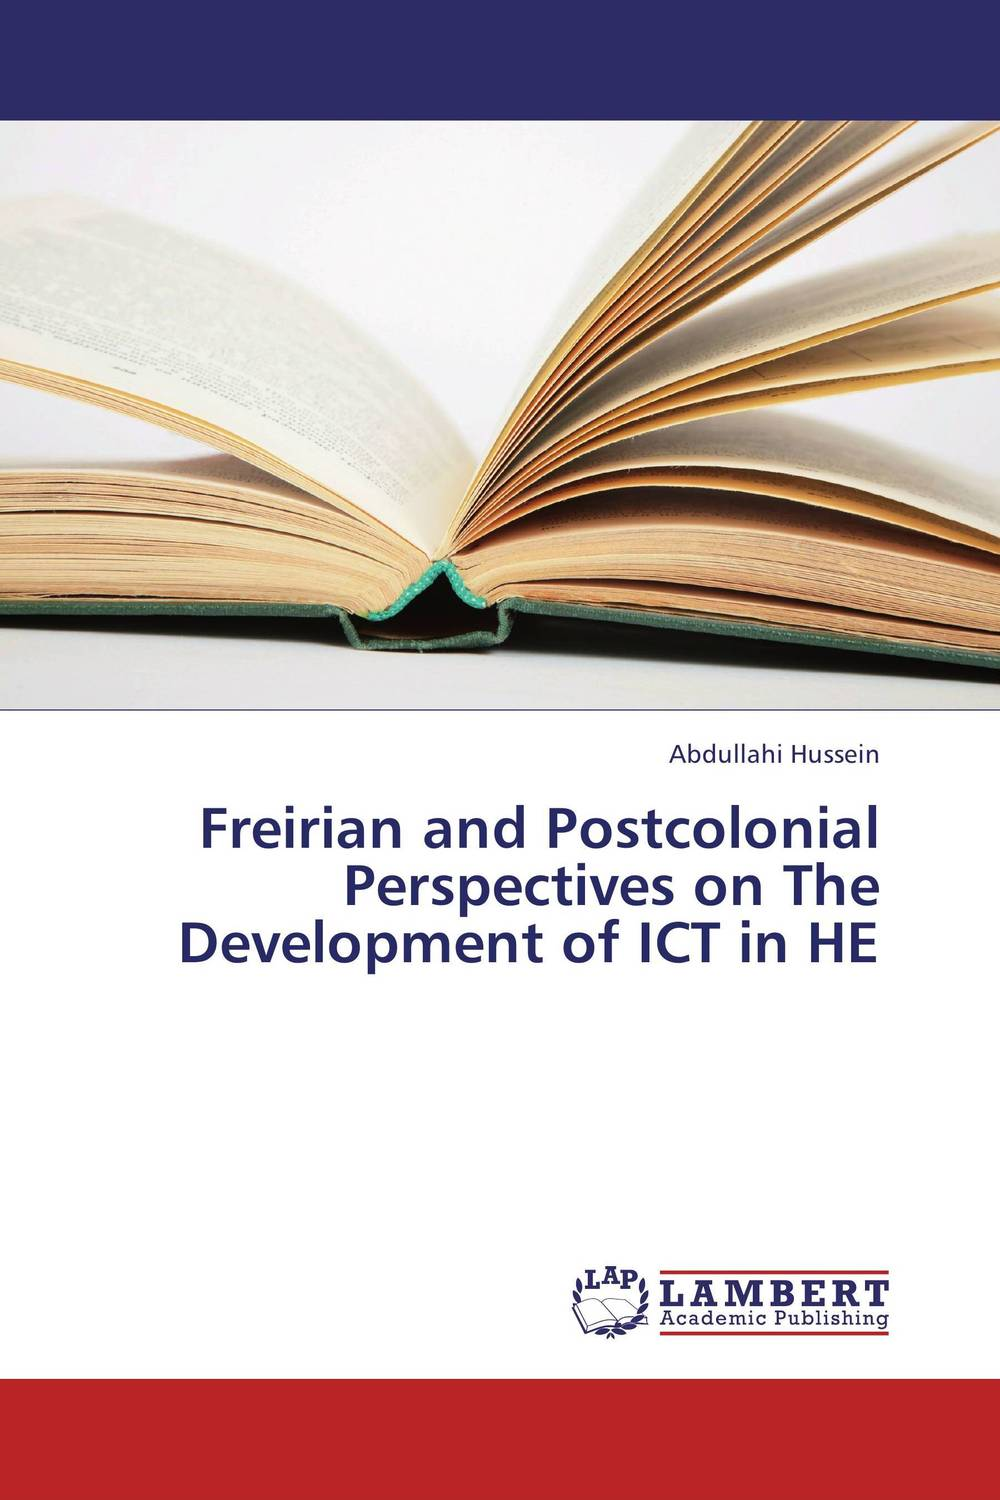 Freirian and Postcolonial Perspectives on The Development of ICT in HE cultural and linguistic hybridity in postcolonial text